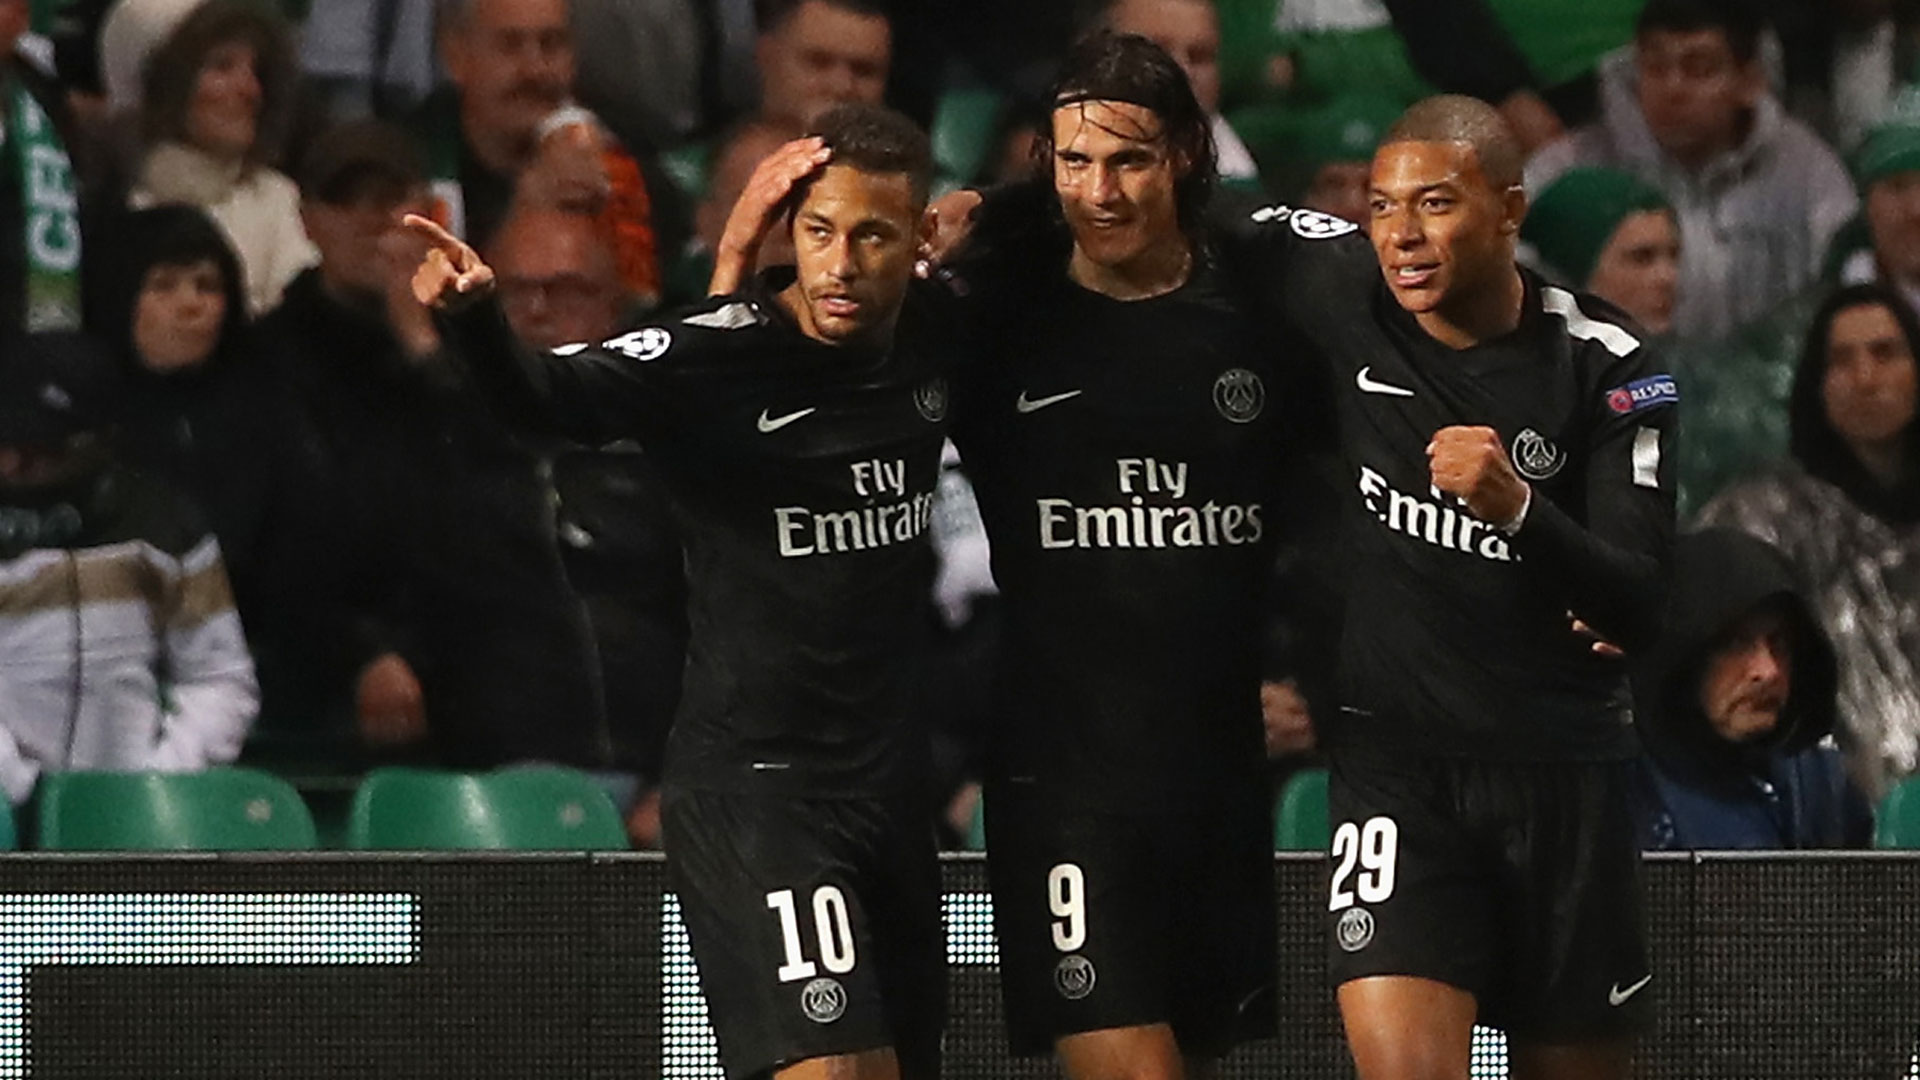 Neymar, Cavani y Mbappé son las grandes figuras de Paris Saint Germain (Getty Images)